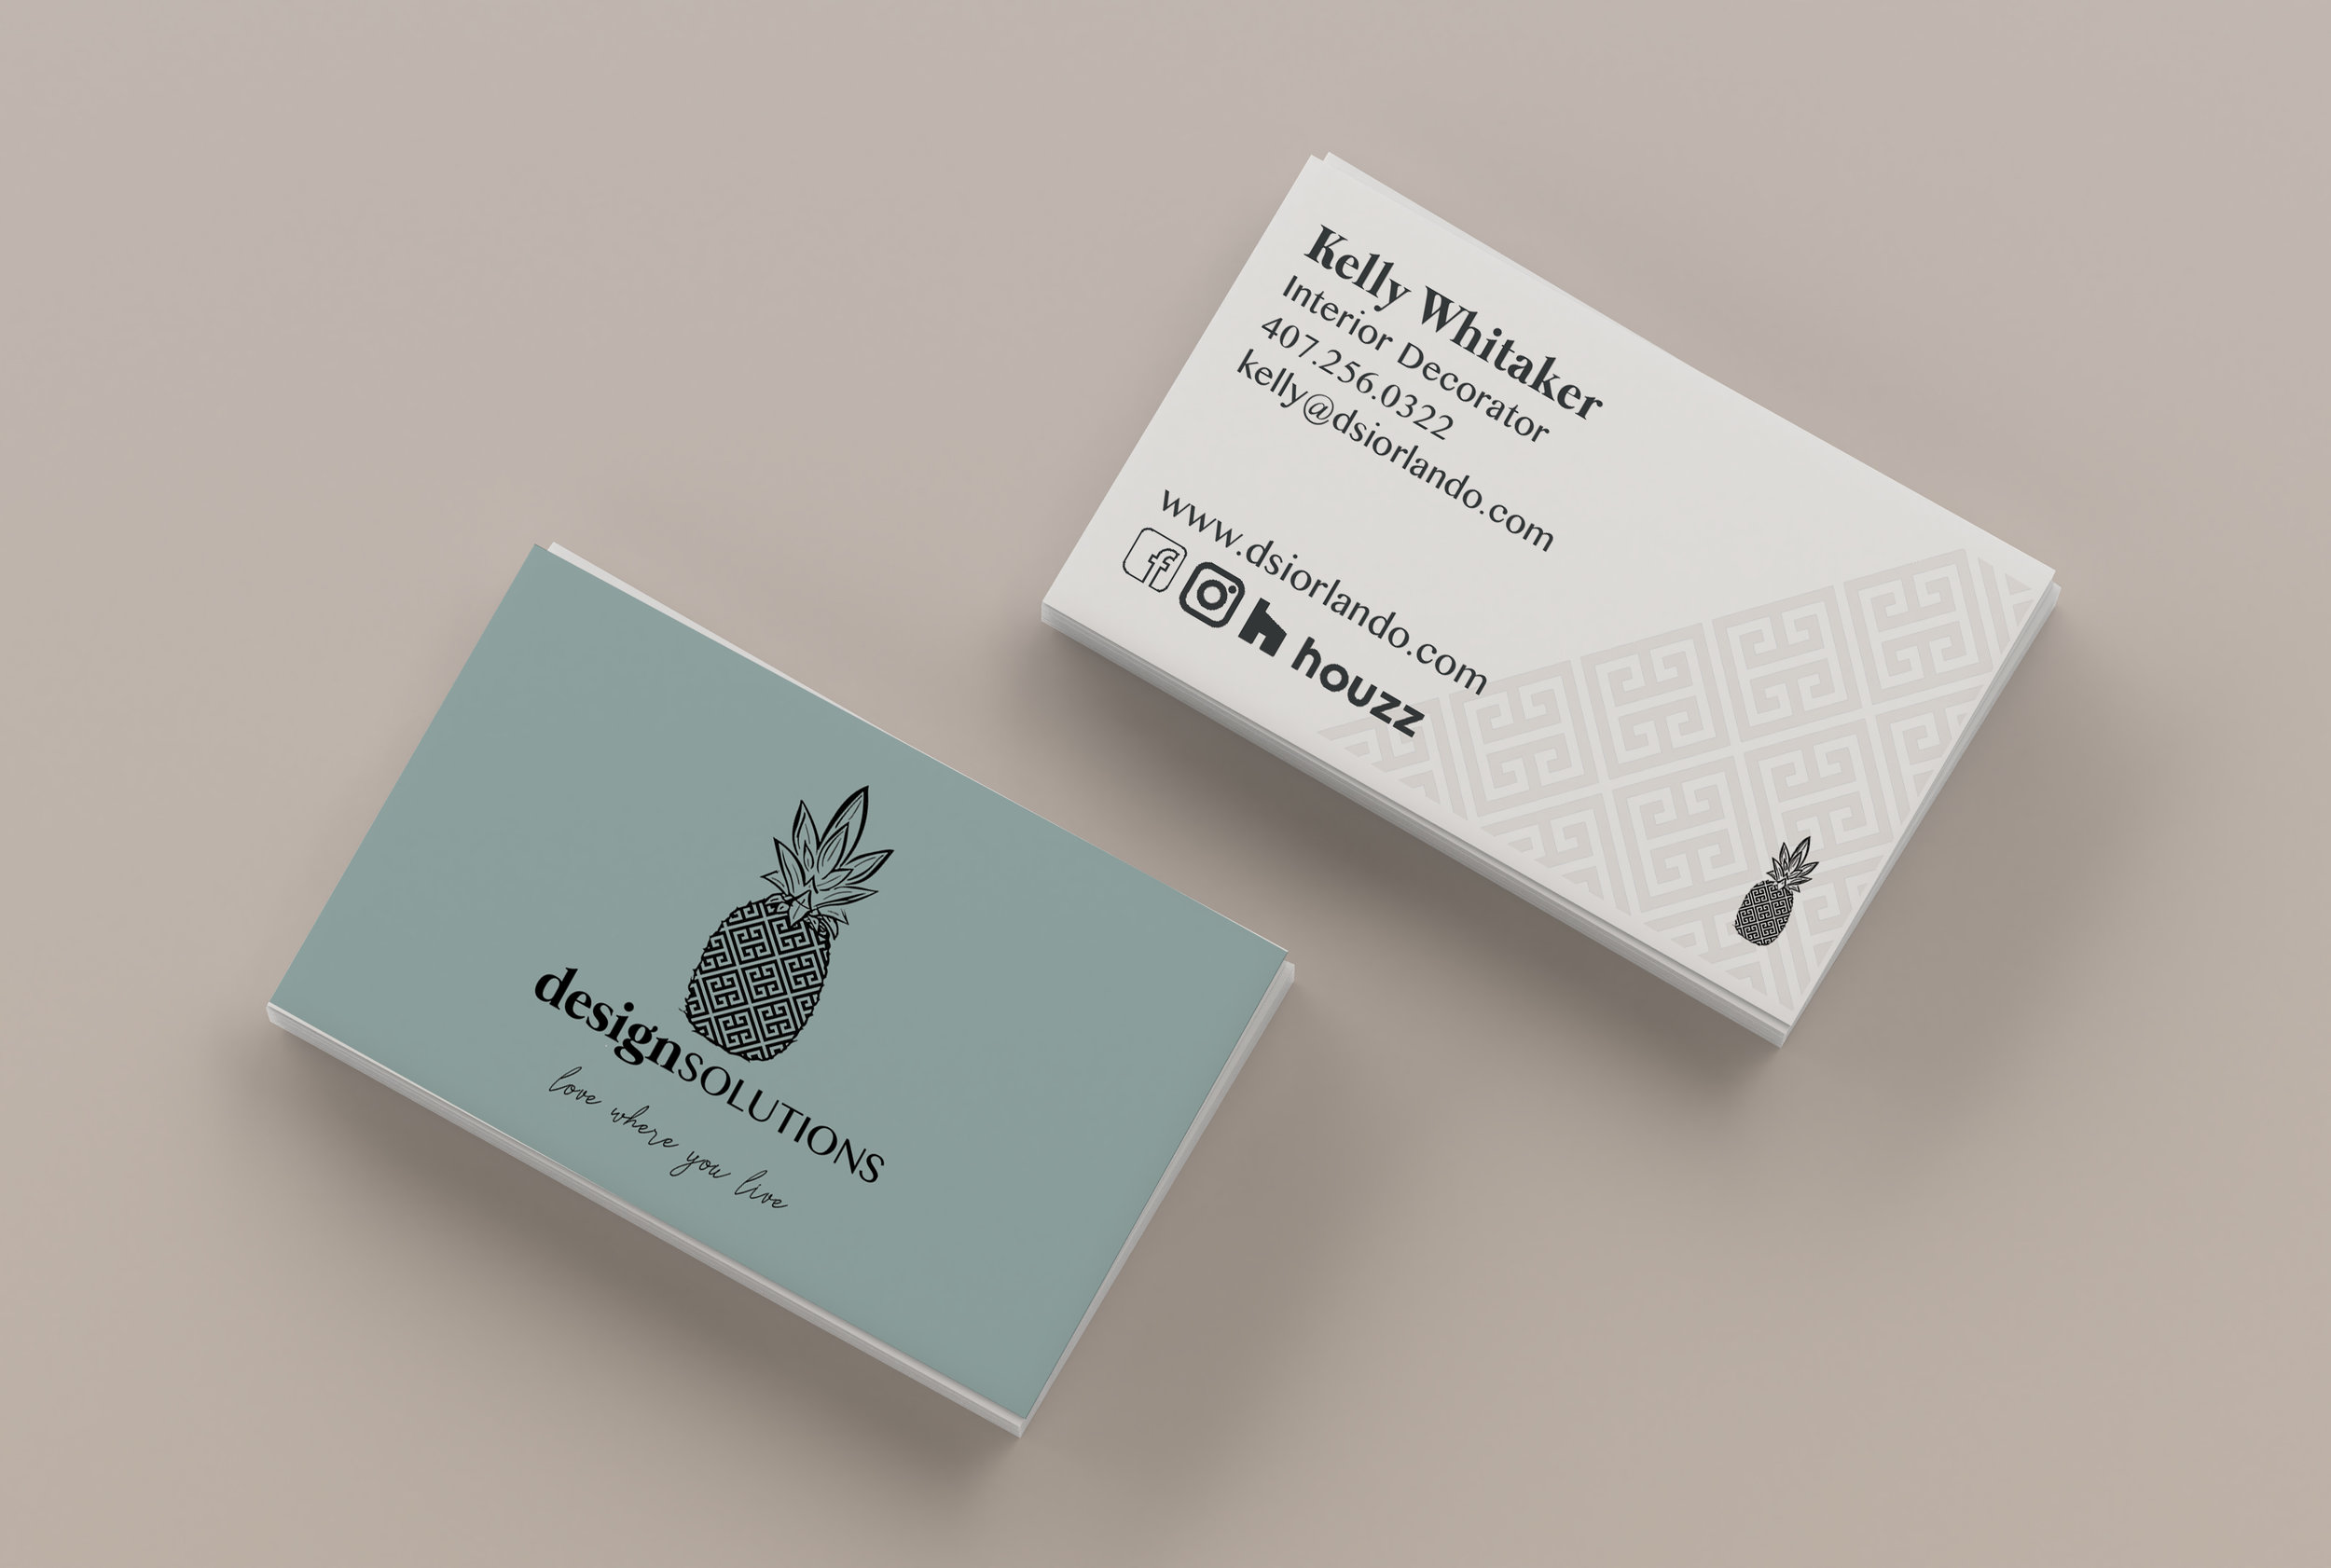 Design Solutions Business Cards Orlando Branding.jpg